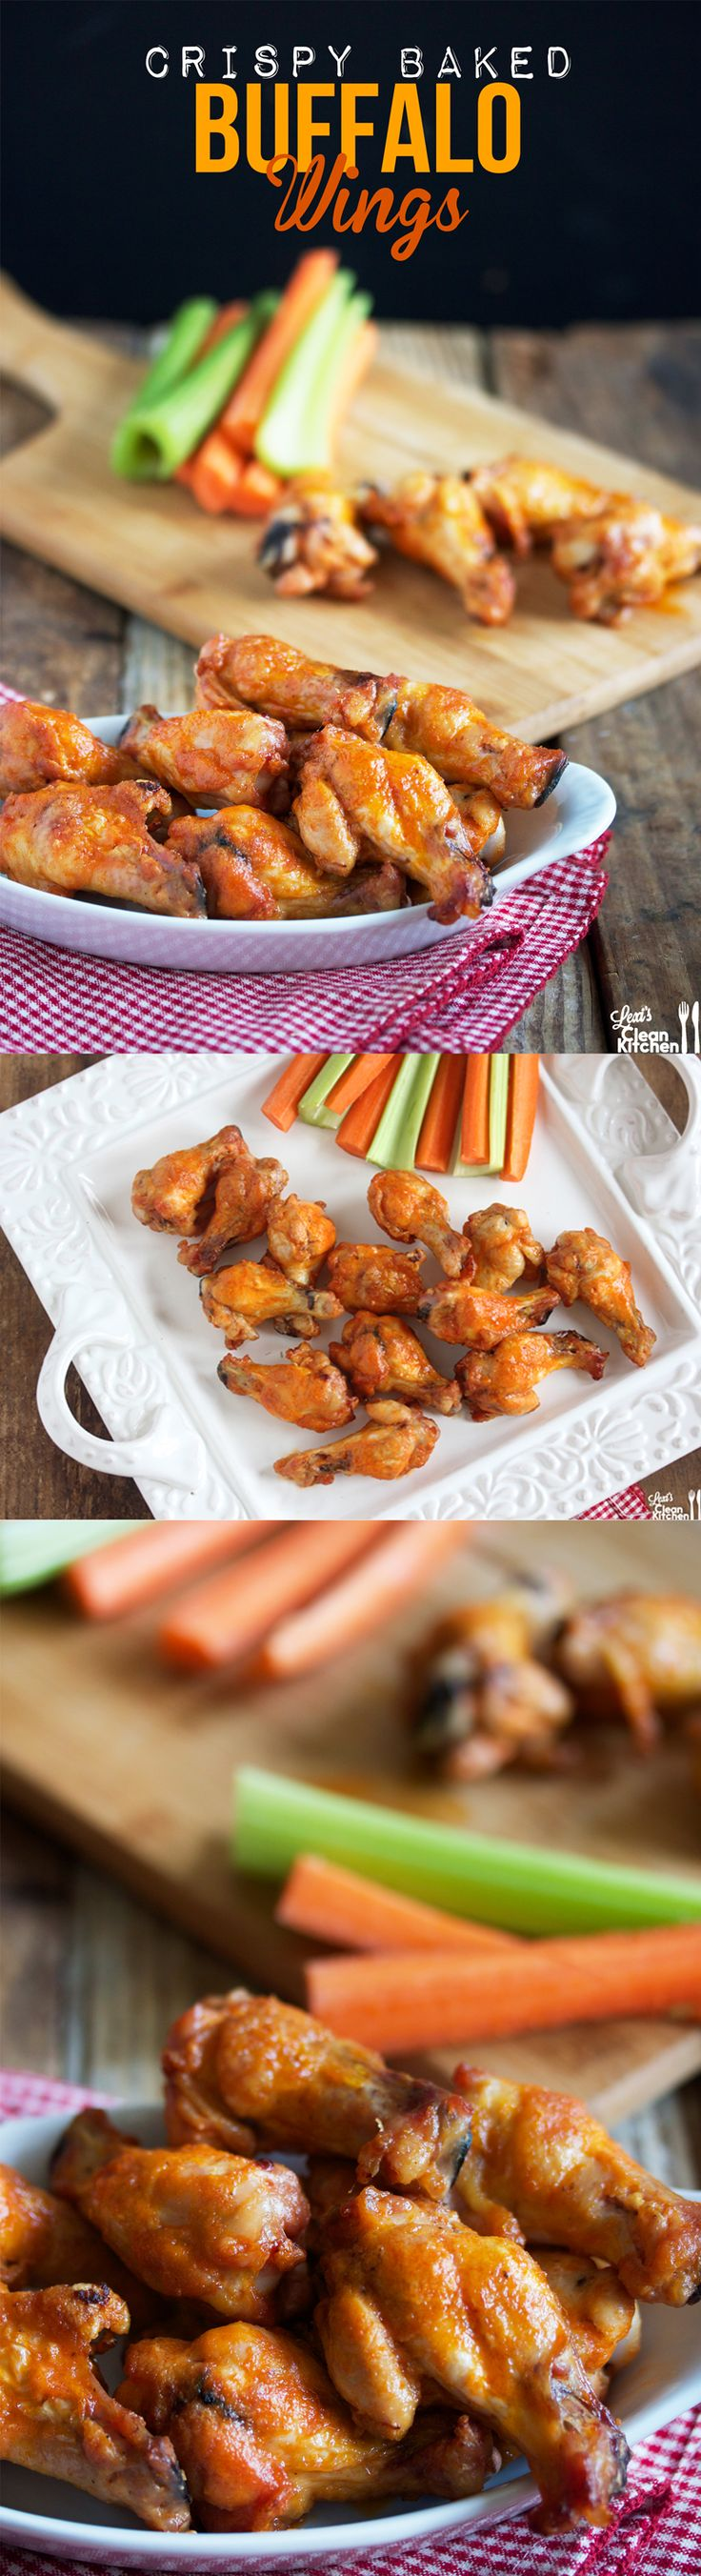 Crispy BAKED Buffalo Wings! #glutenfree #paleo #football